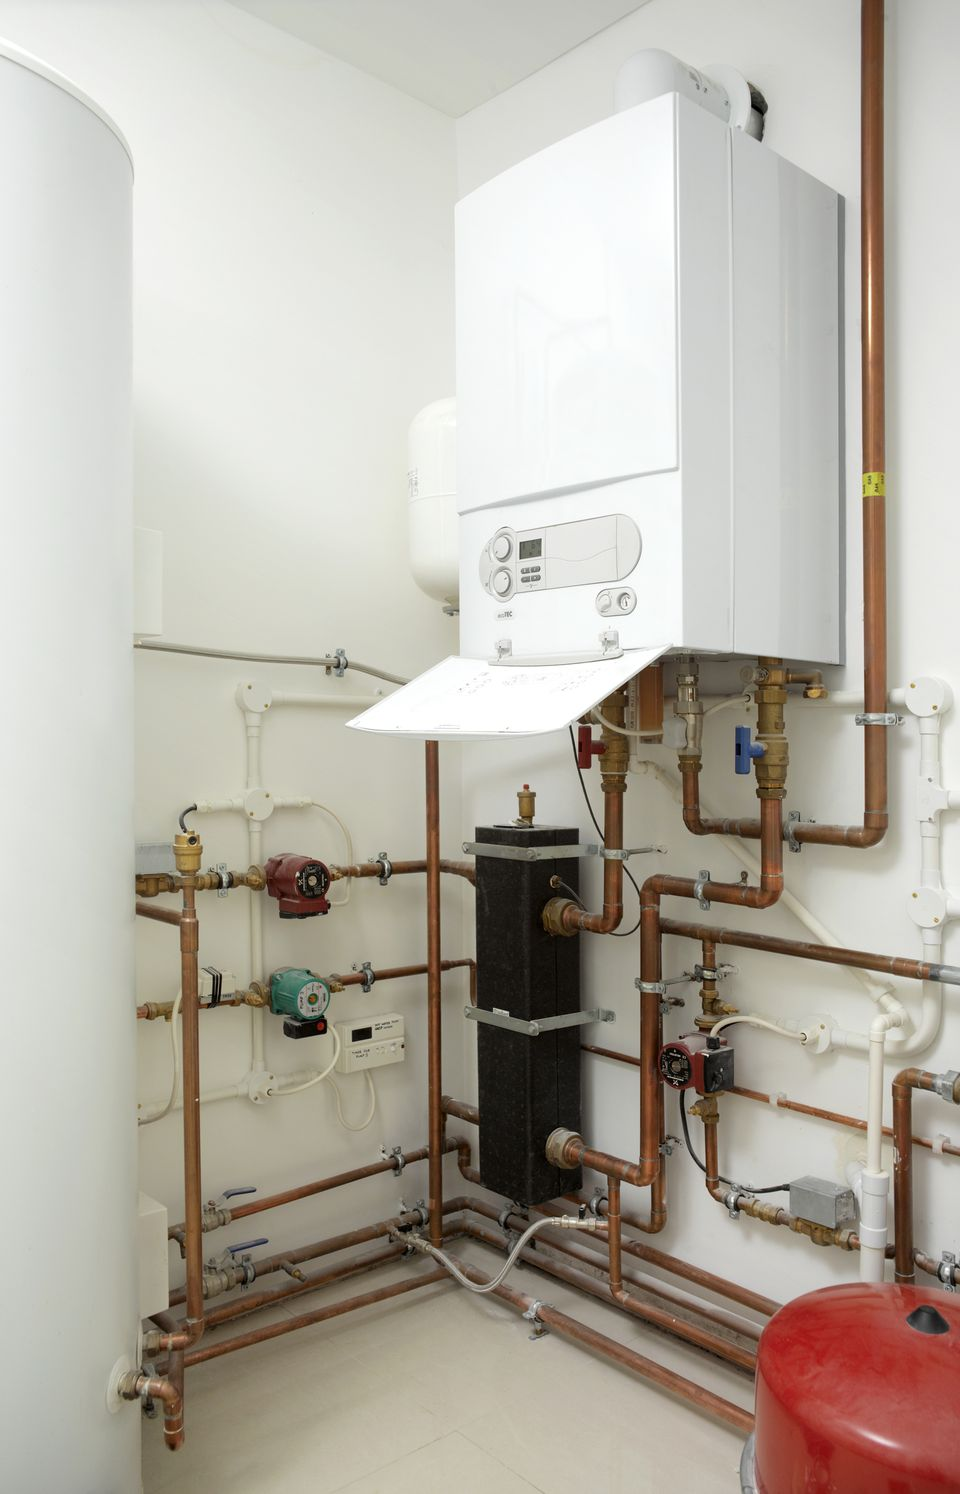 Types of home heating systems for What is the best type of heating system for homes